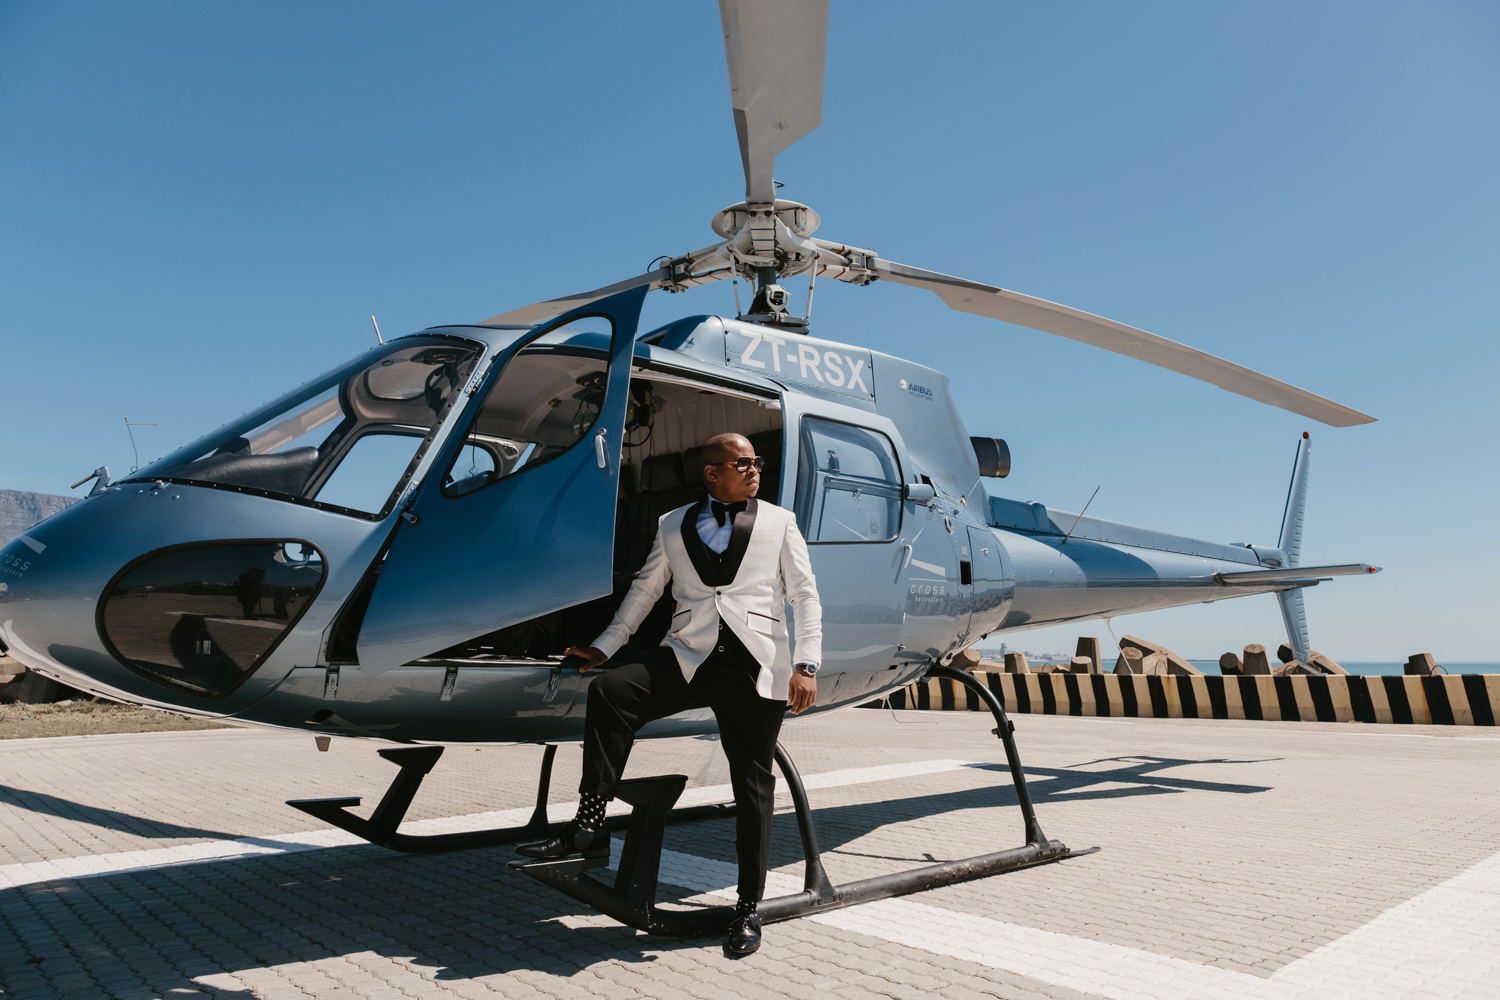 an image taken by Vividblue of the groom landing in a helicopter and making his entrance to the wedding at Val de Vie.